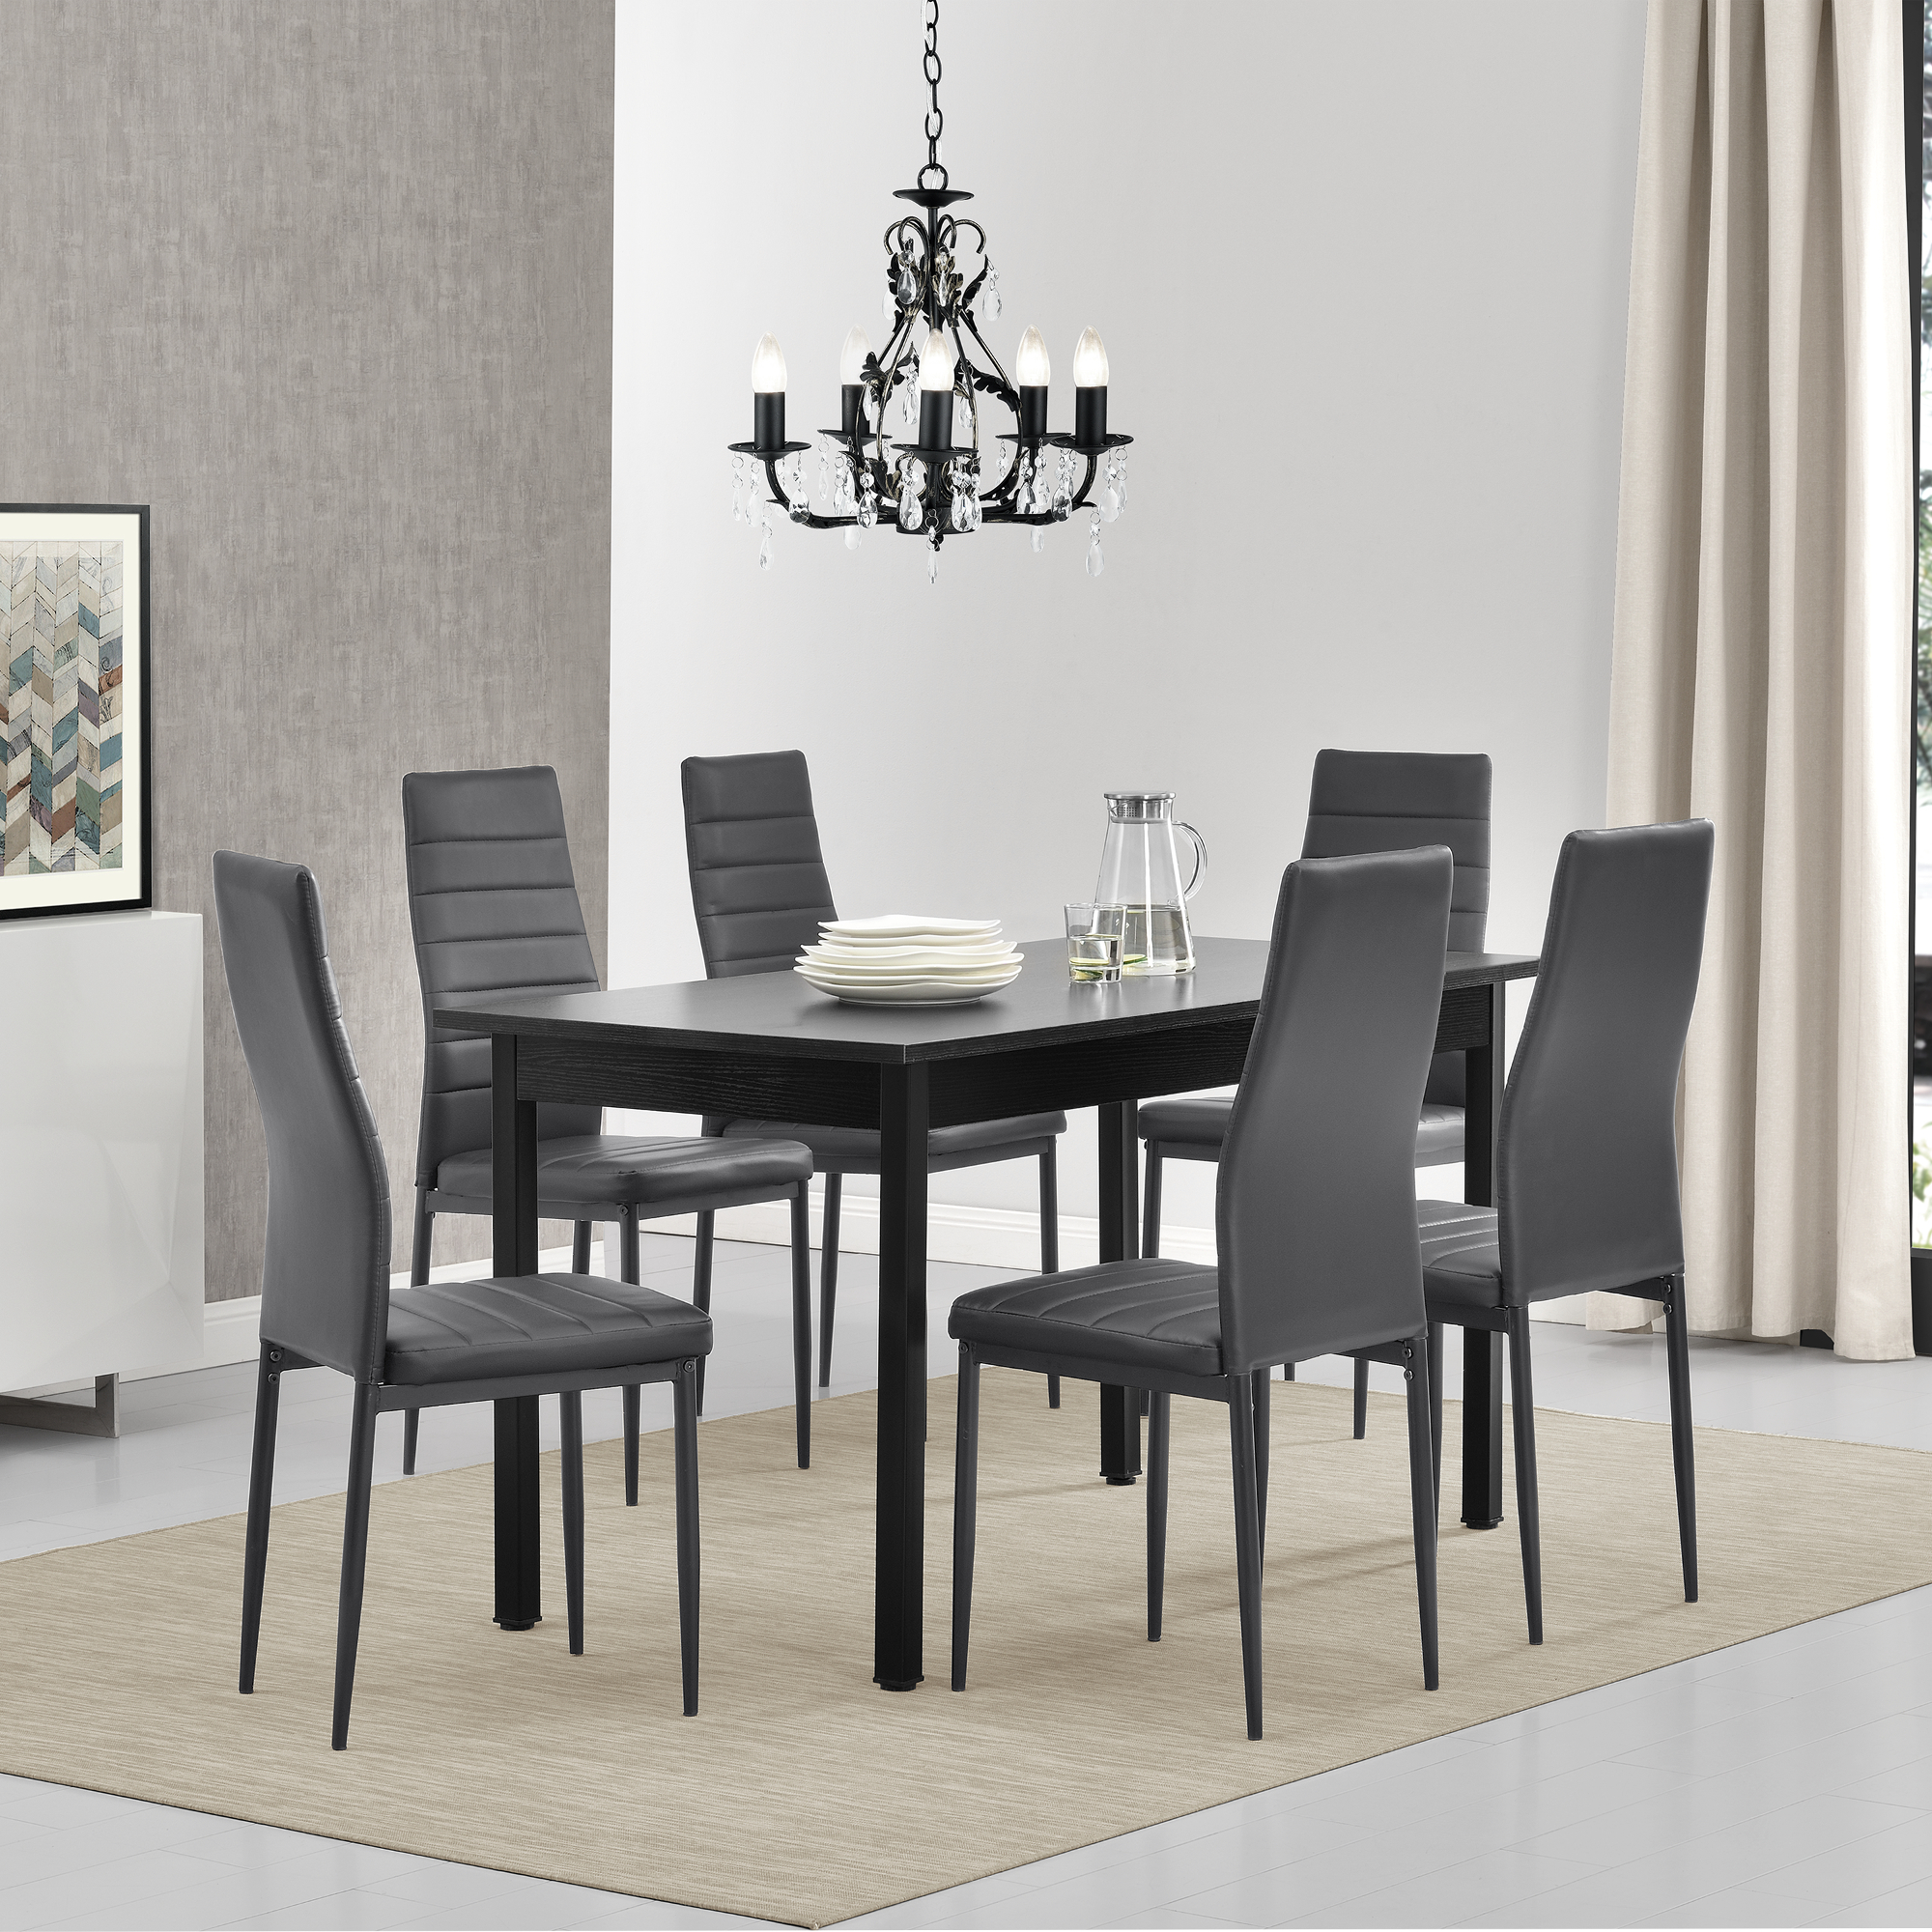 esstisch mit 6 st hlen schwarz grau 140x60 k chentisch esszimmertisch ebay. Black Bedroom Furniture Sets. Home Design Ideas